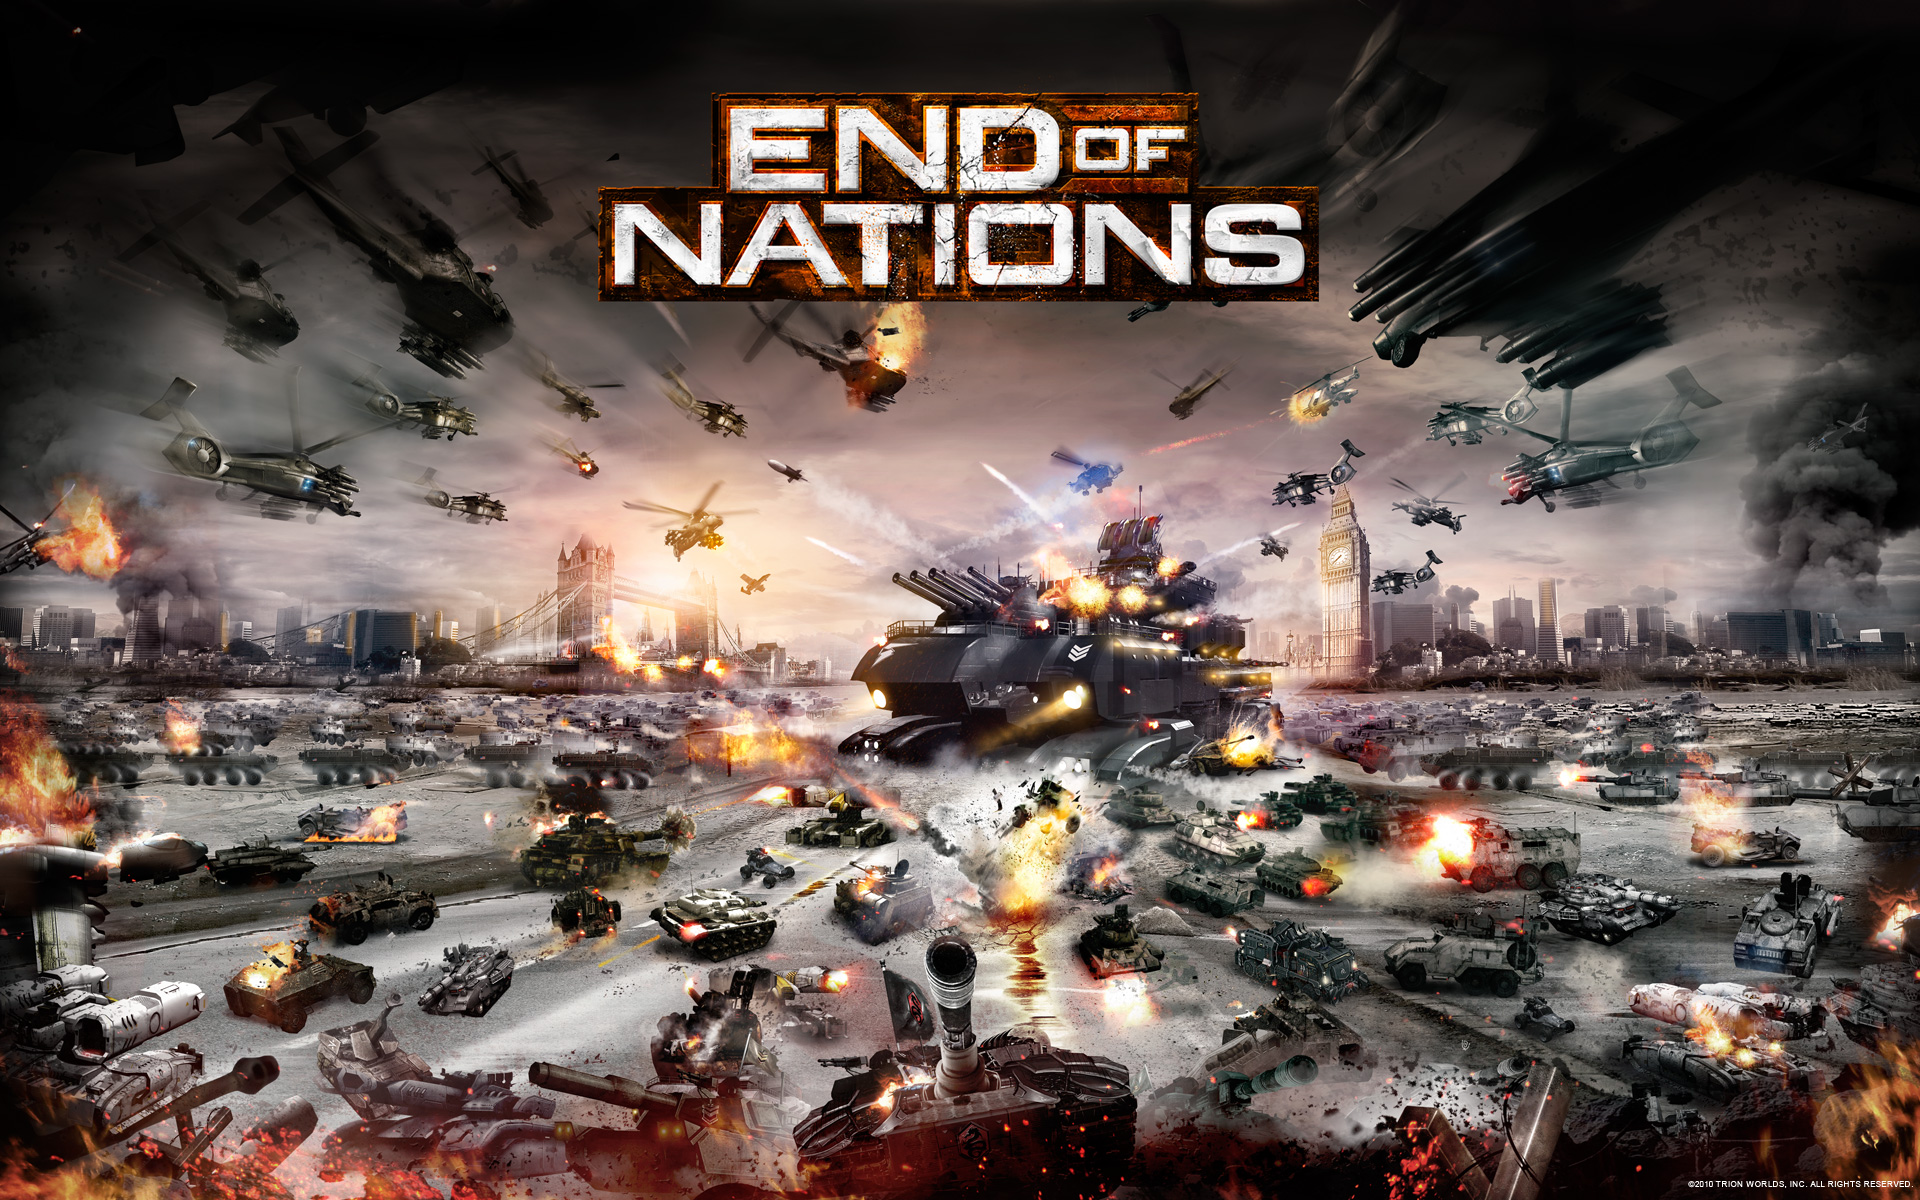 end_of_nations_game-wide